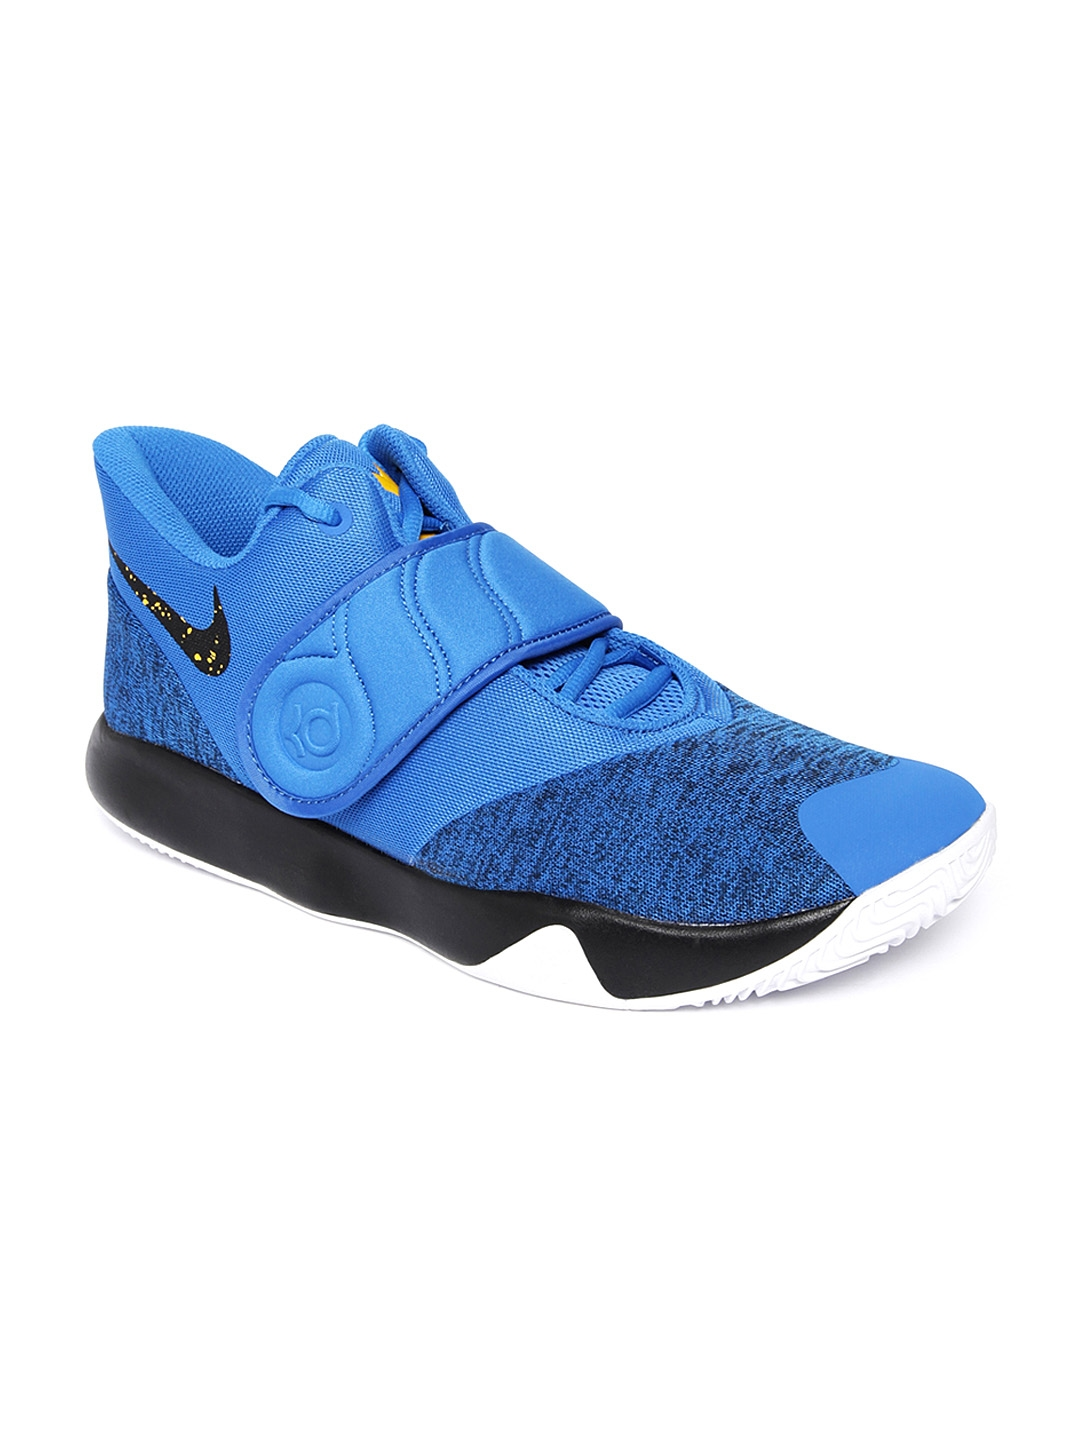 new arrival c0bf1 16a49 Nike Men KD TREY 5 VI Blue Basketball Shoes